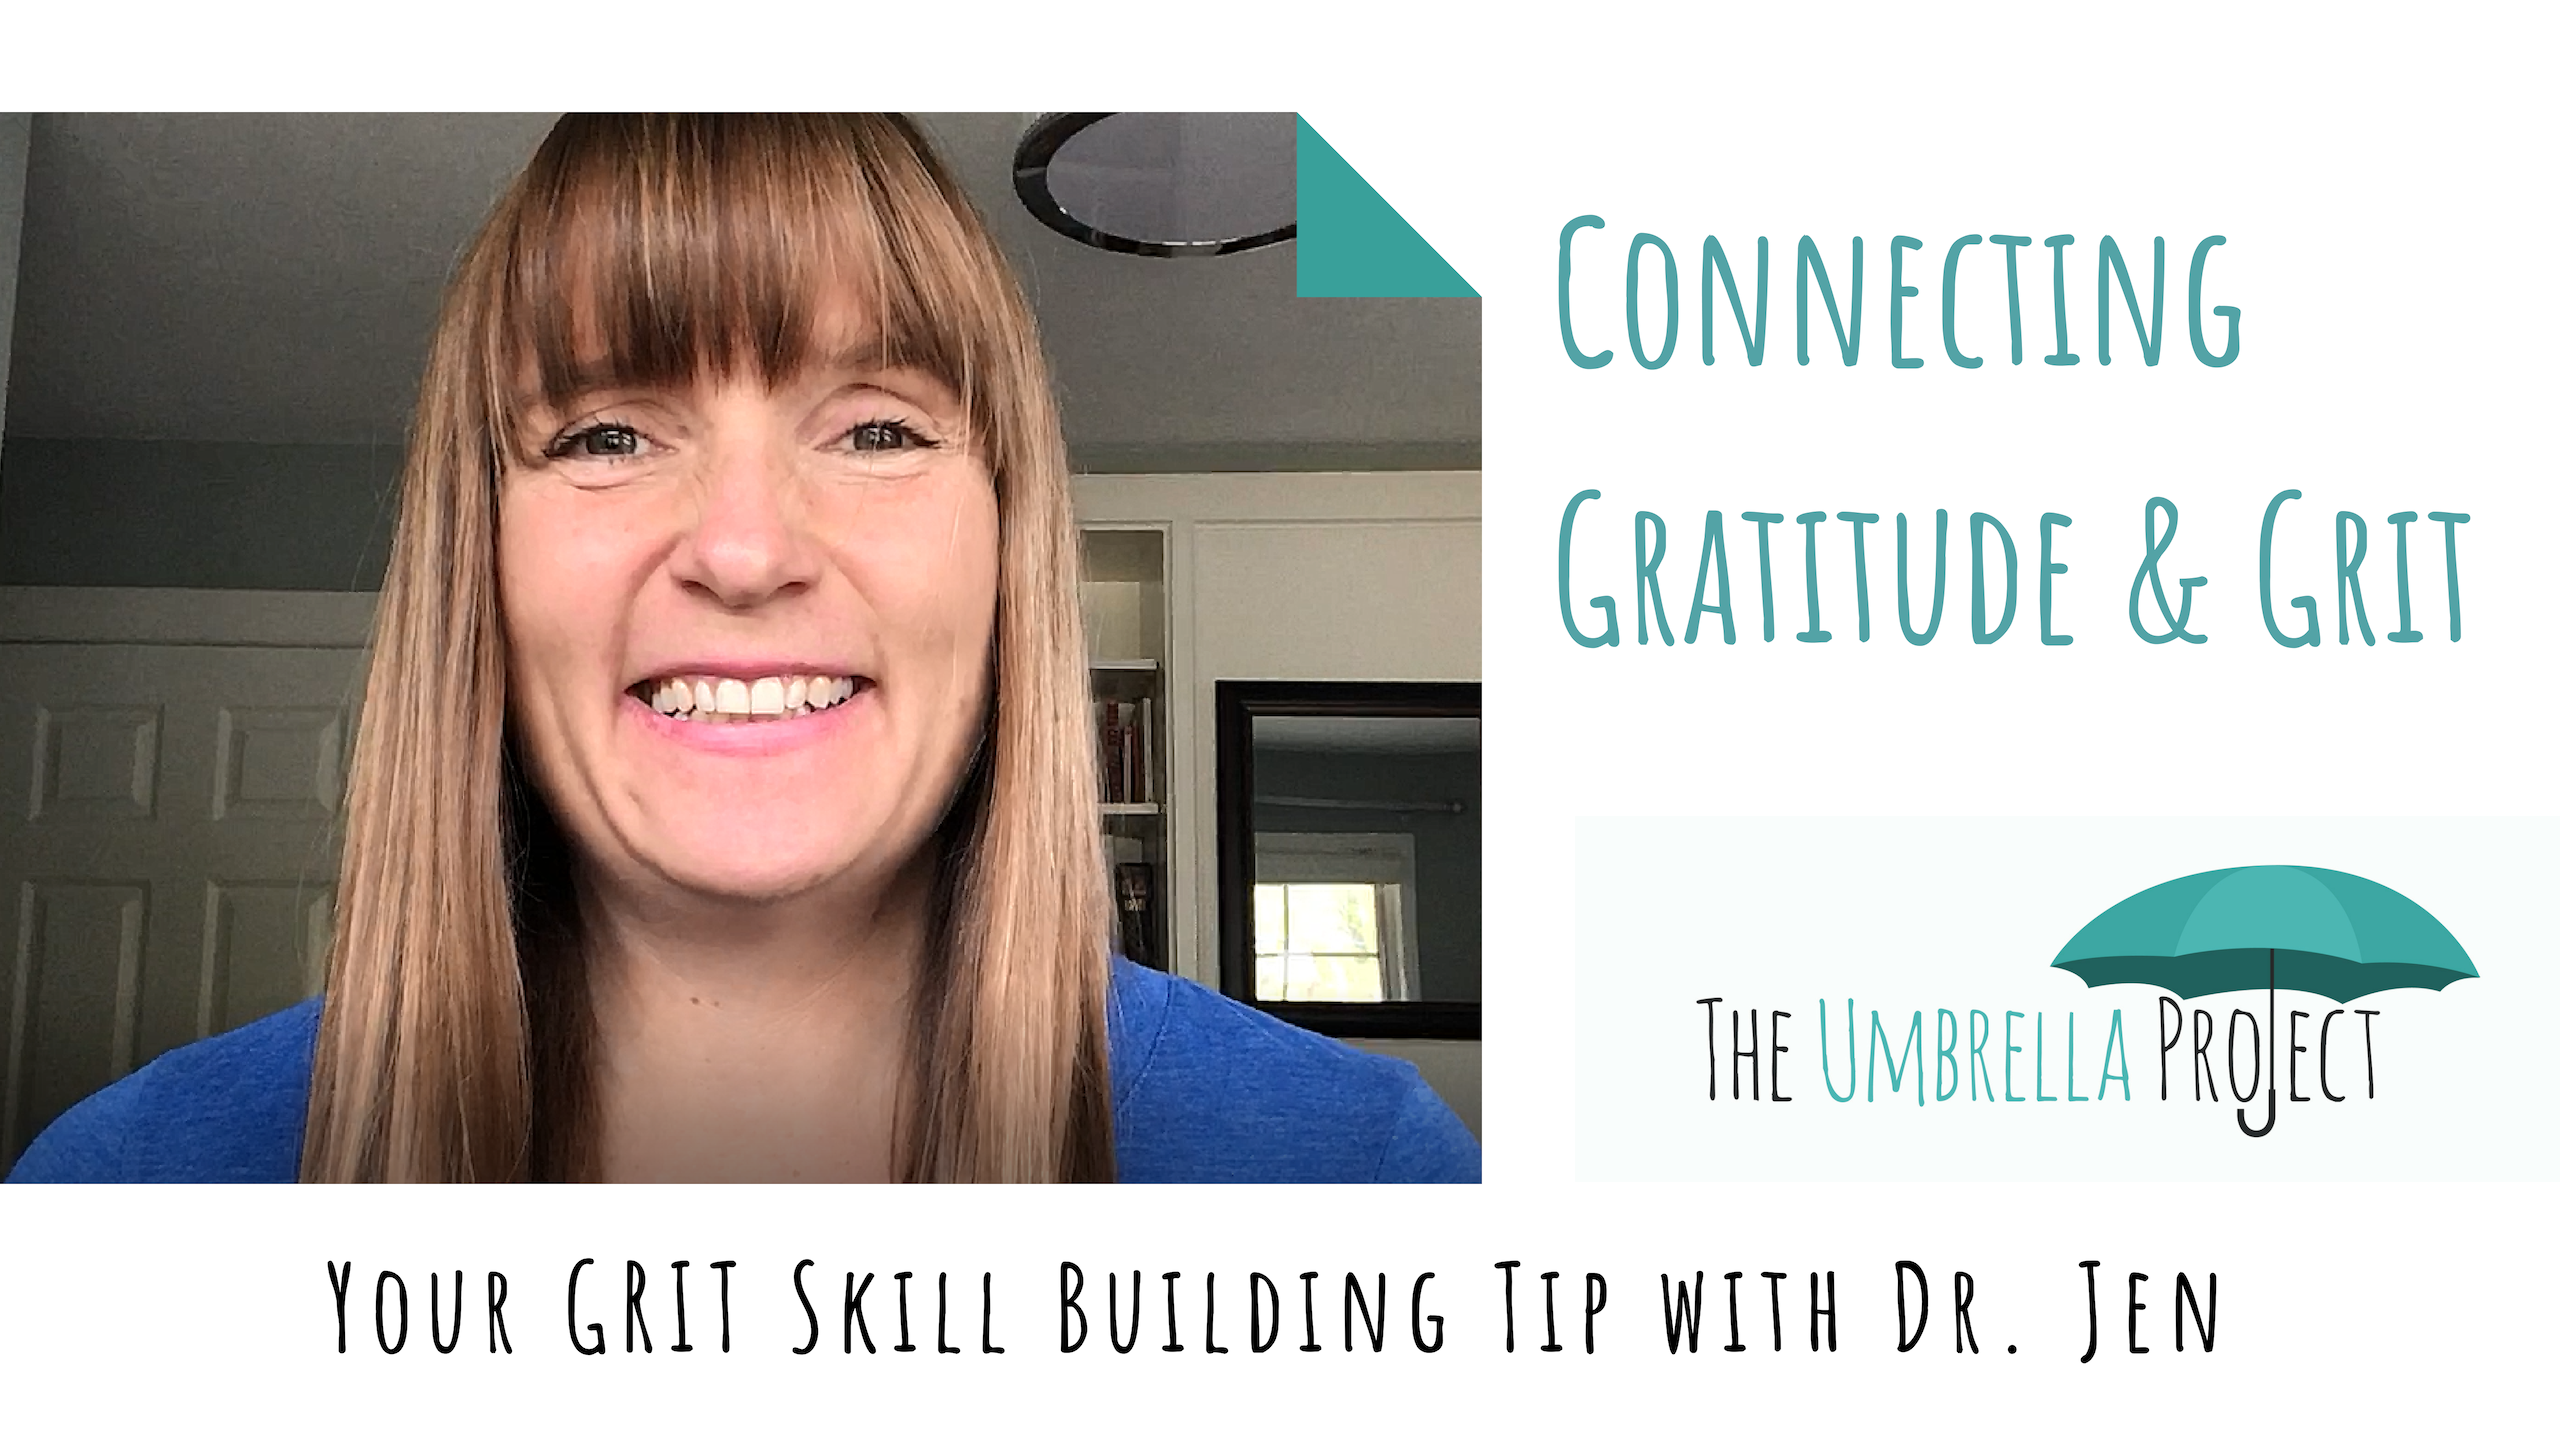 Connecting Gratitude and Grit: Your Grit Skill Building Tip with Dr. Jen